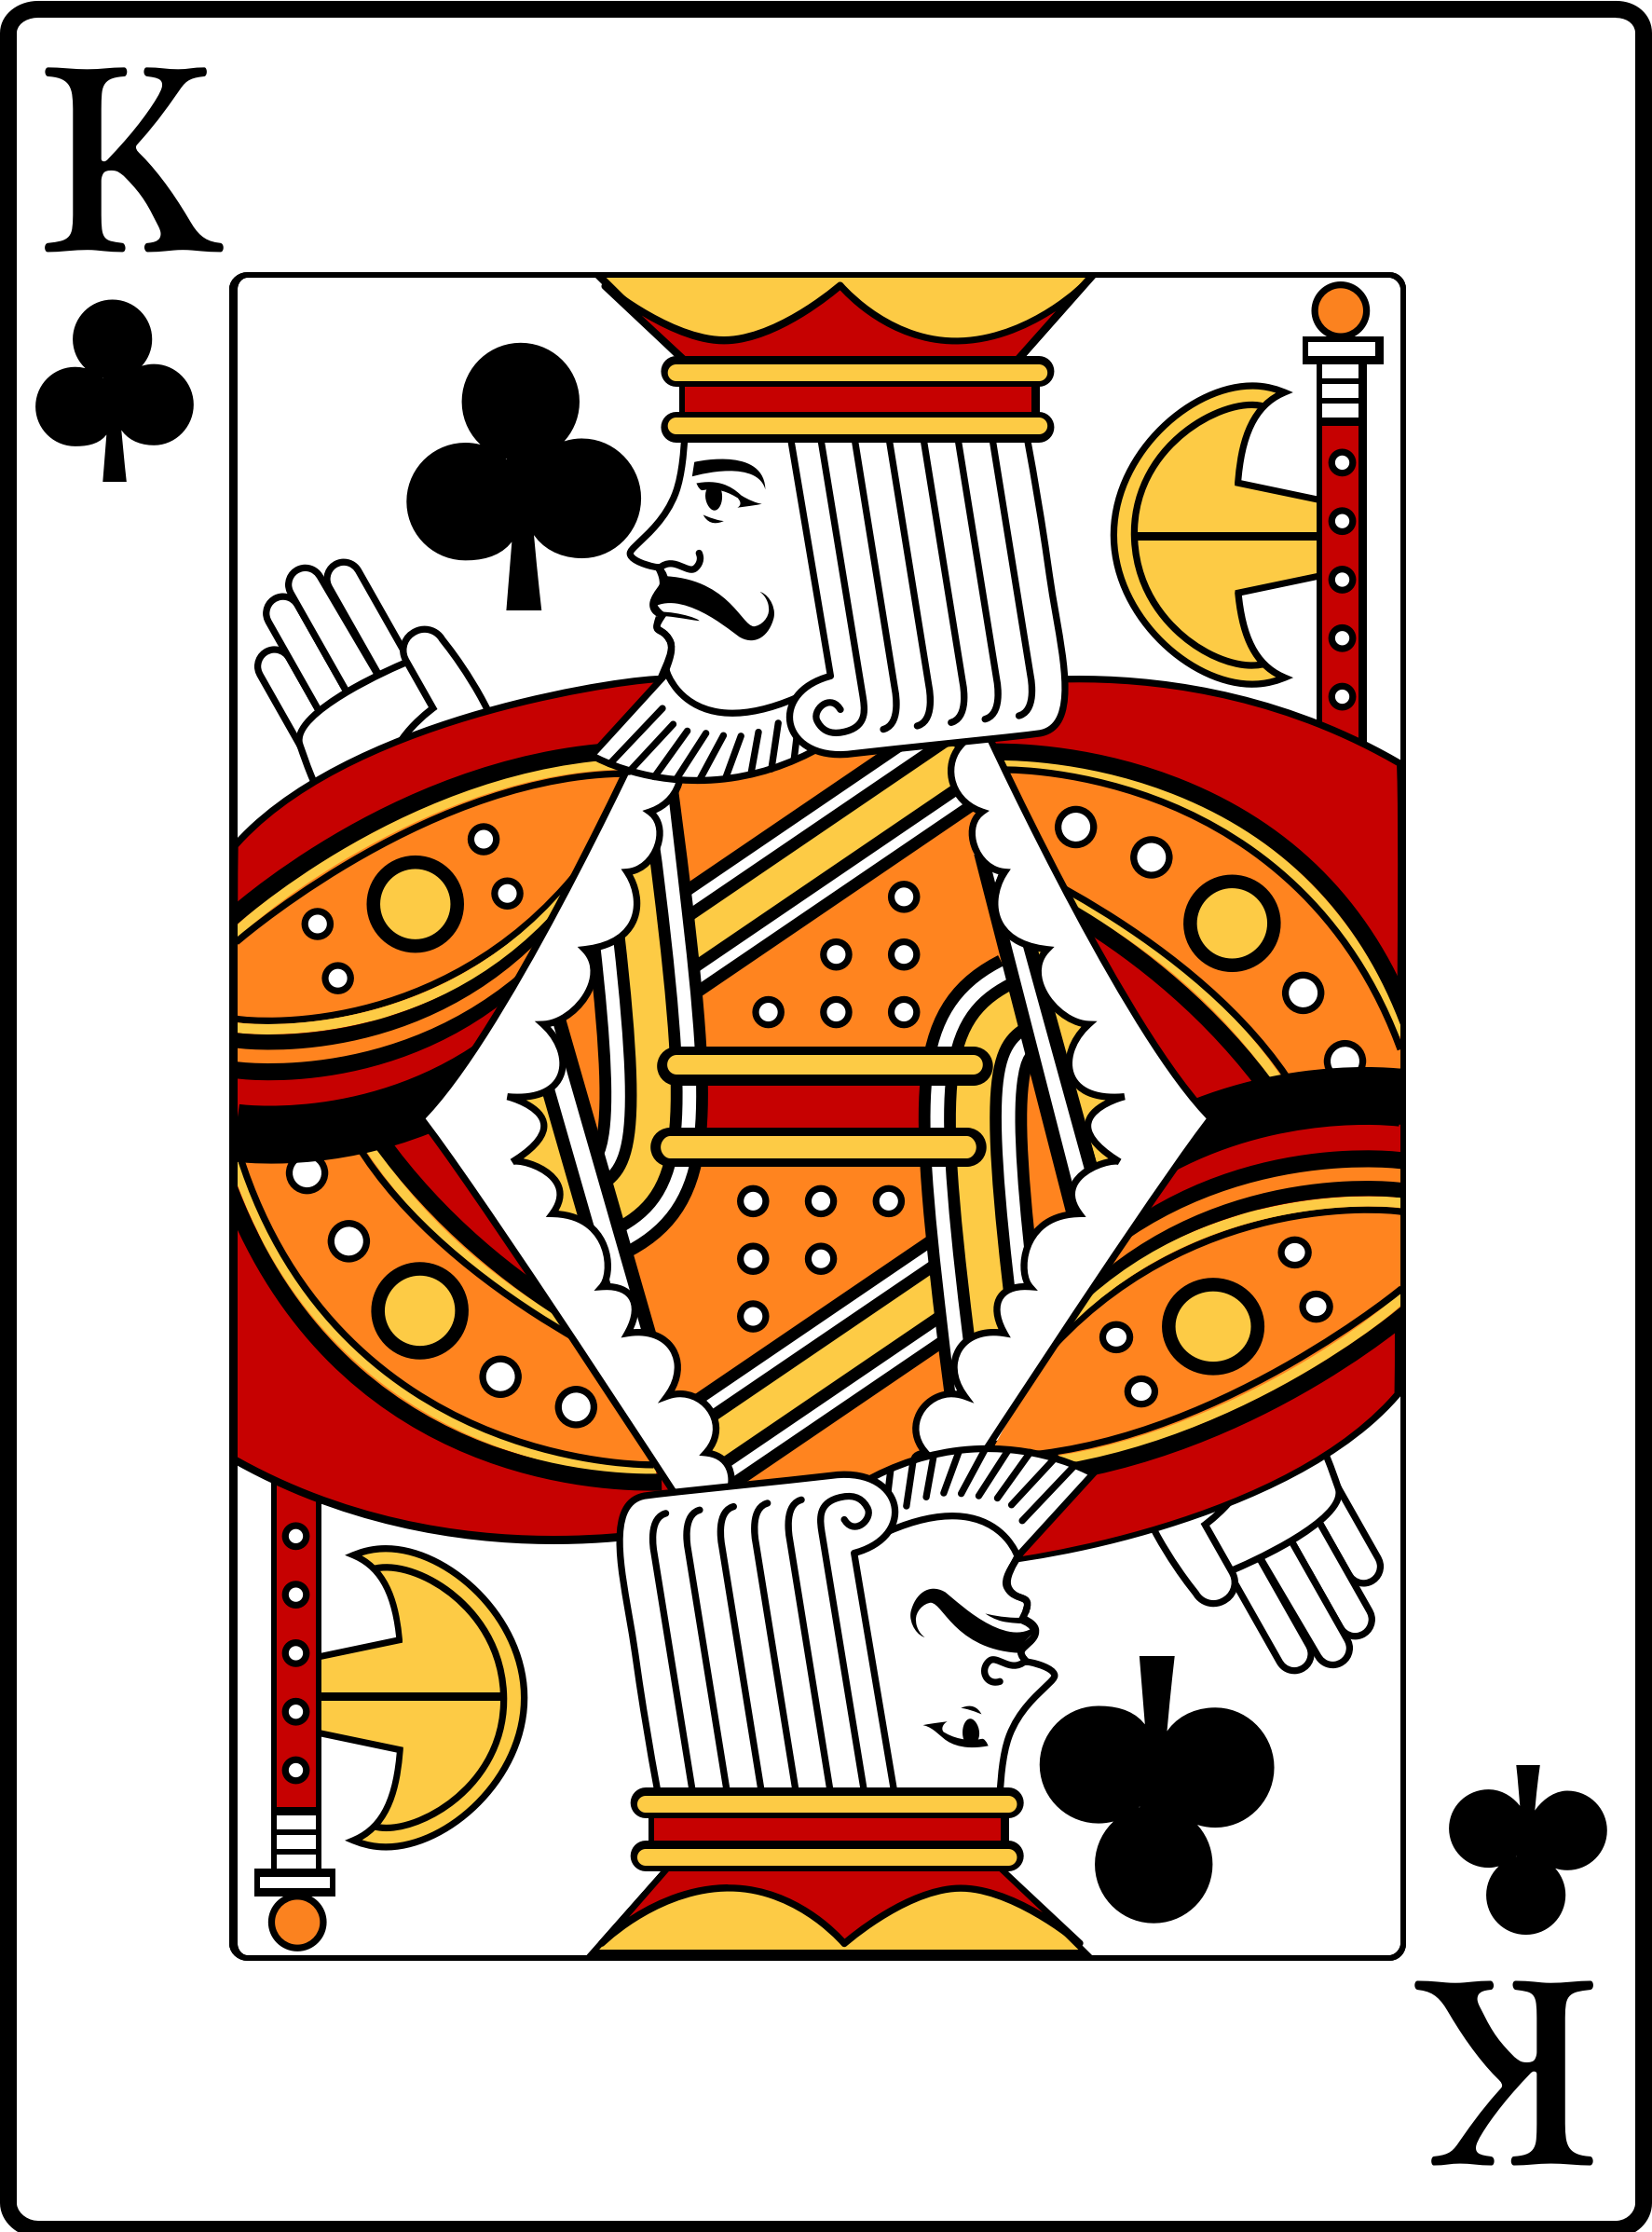 King of Clubs by casino